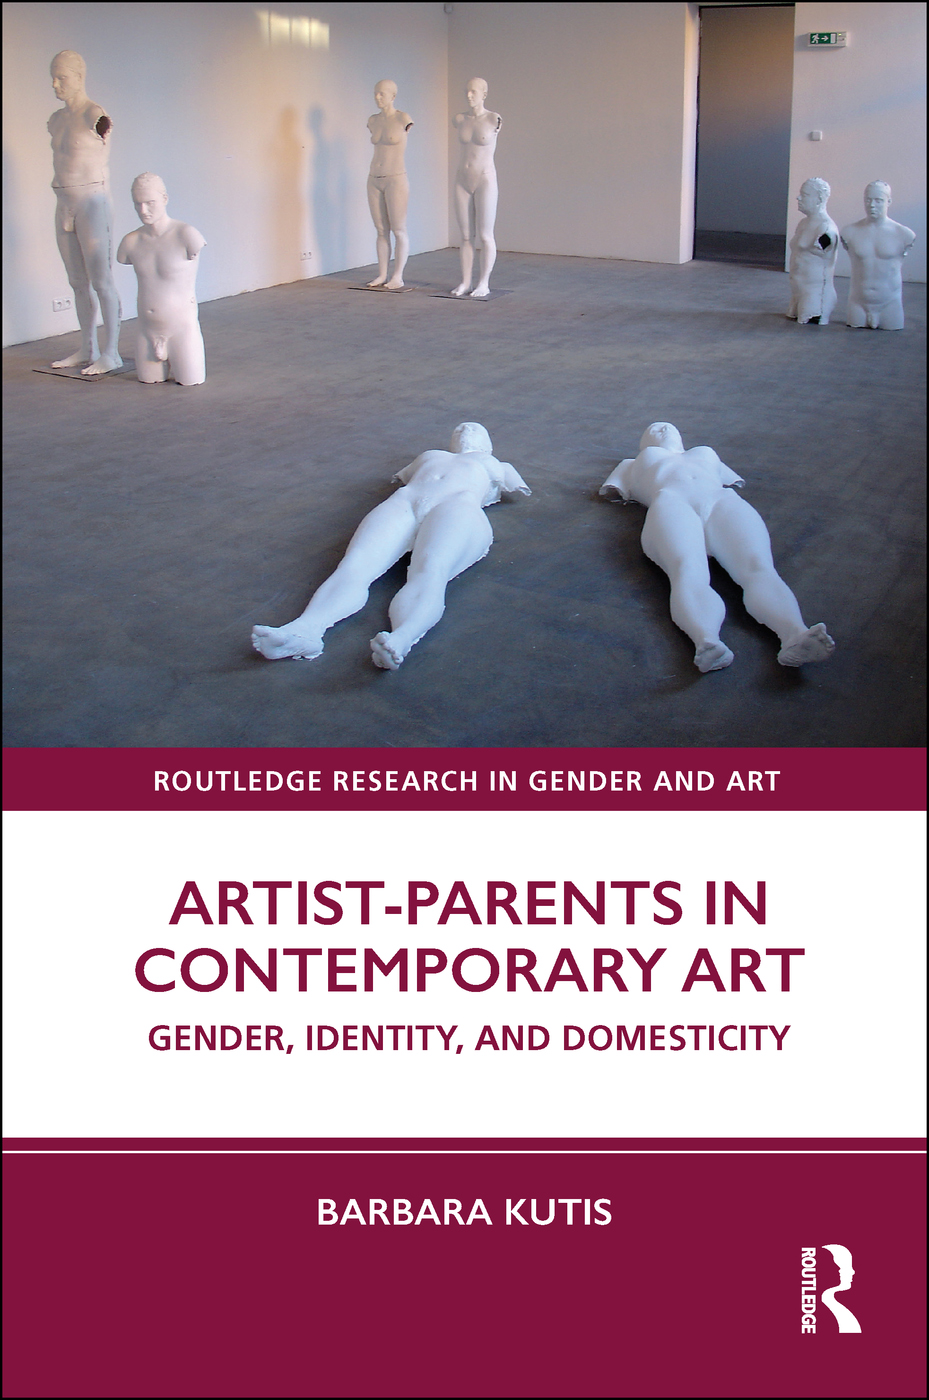 The Future of Artist-Parents in Contemporary Art